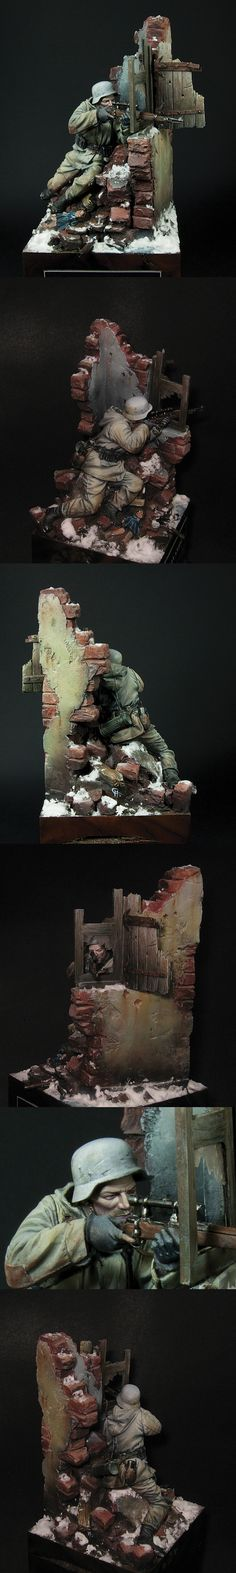 CoolMiniOrNot - German Sniper- Stalingrad 1943 by Mauganra